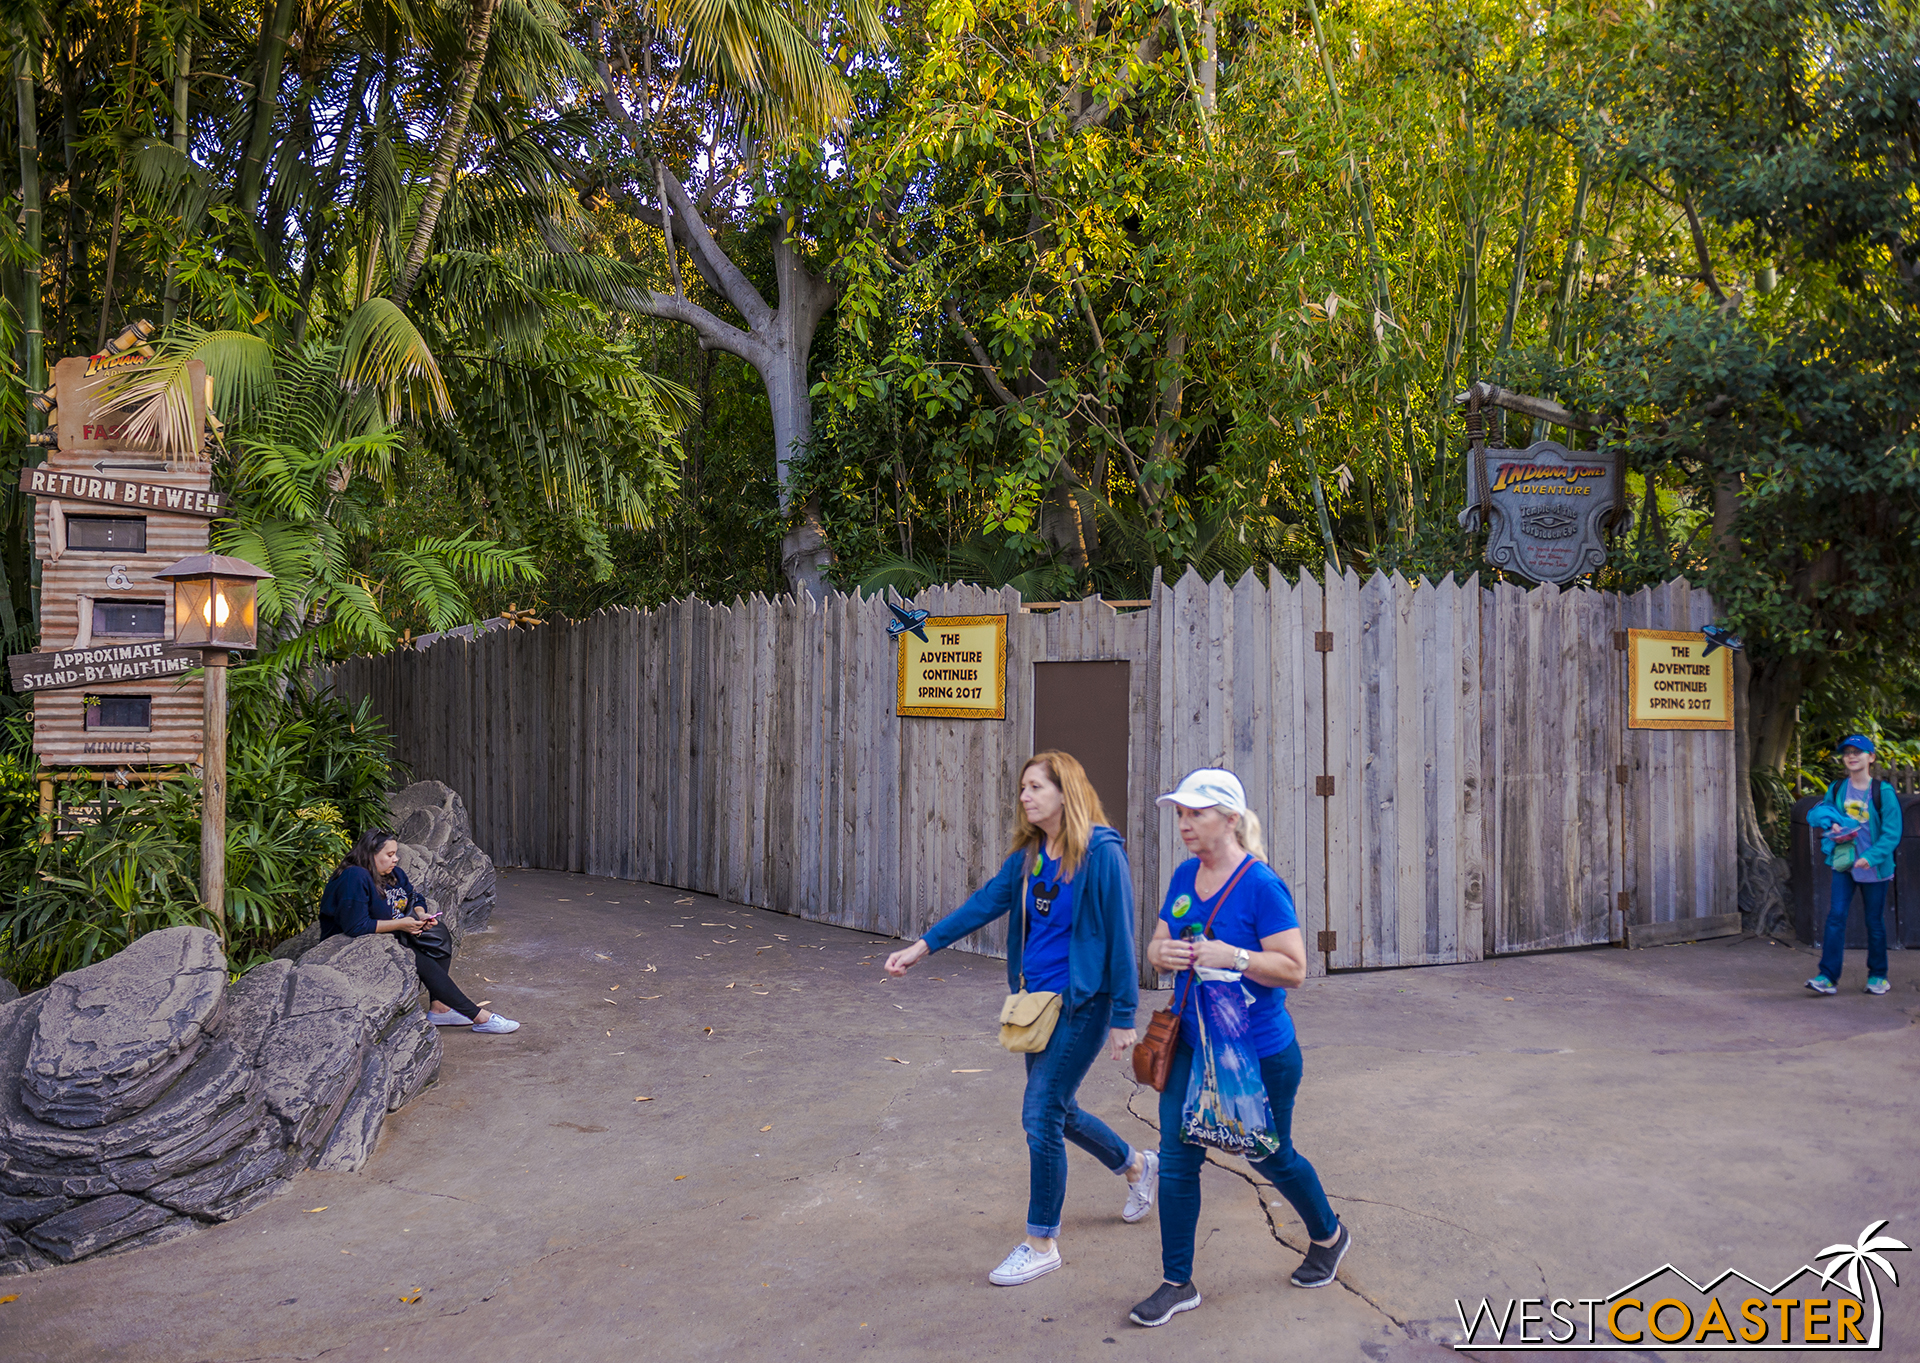 The Indiana Jones Adventure is closed for refurbishment. A bit late, might I add. So I don't expect this to last long, since summer is around the corner.